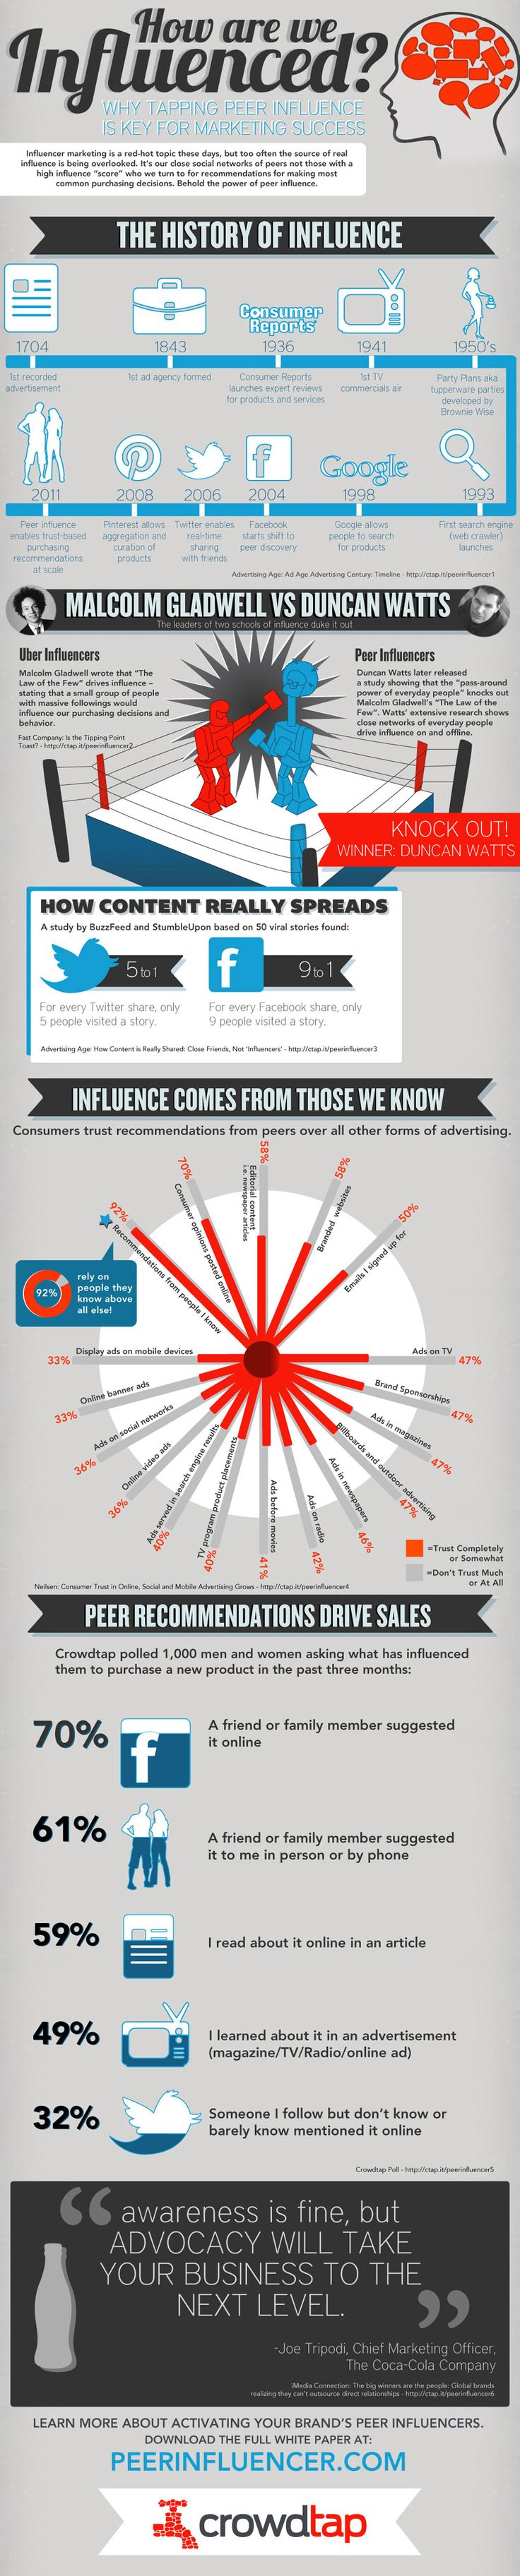 How are we influenced? #infographic